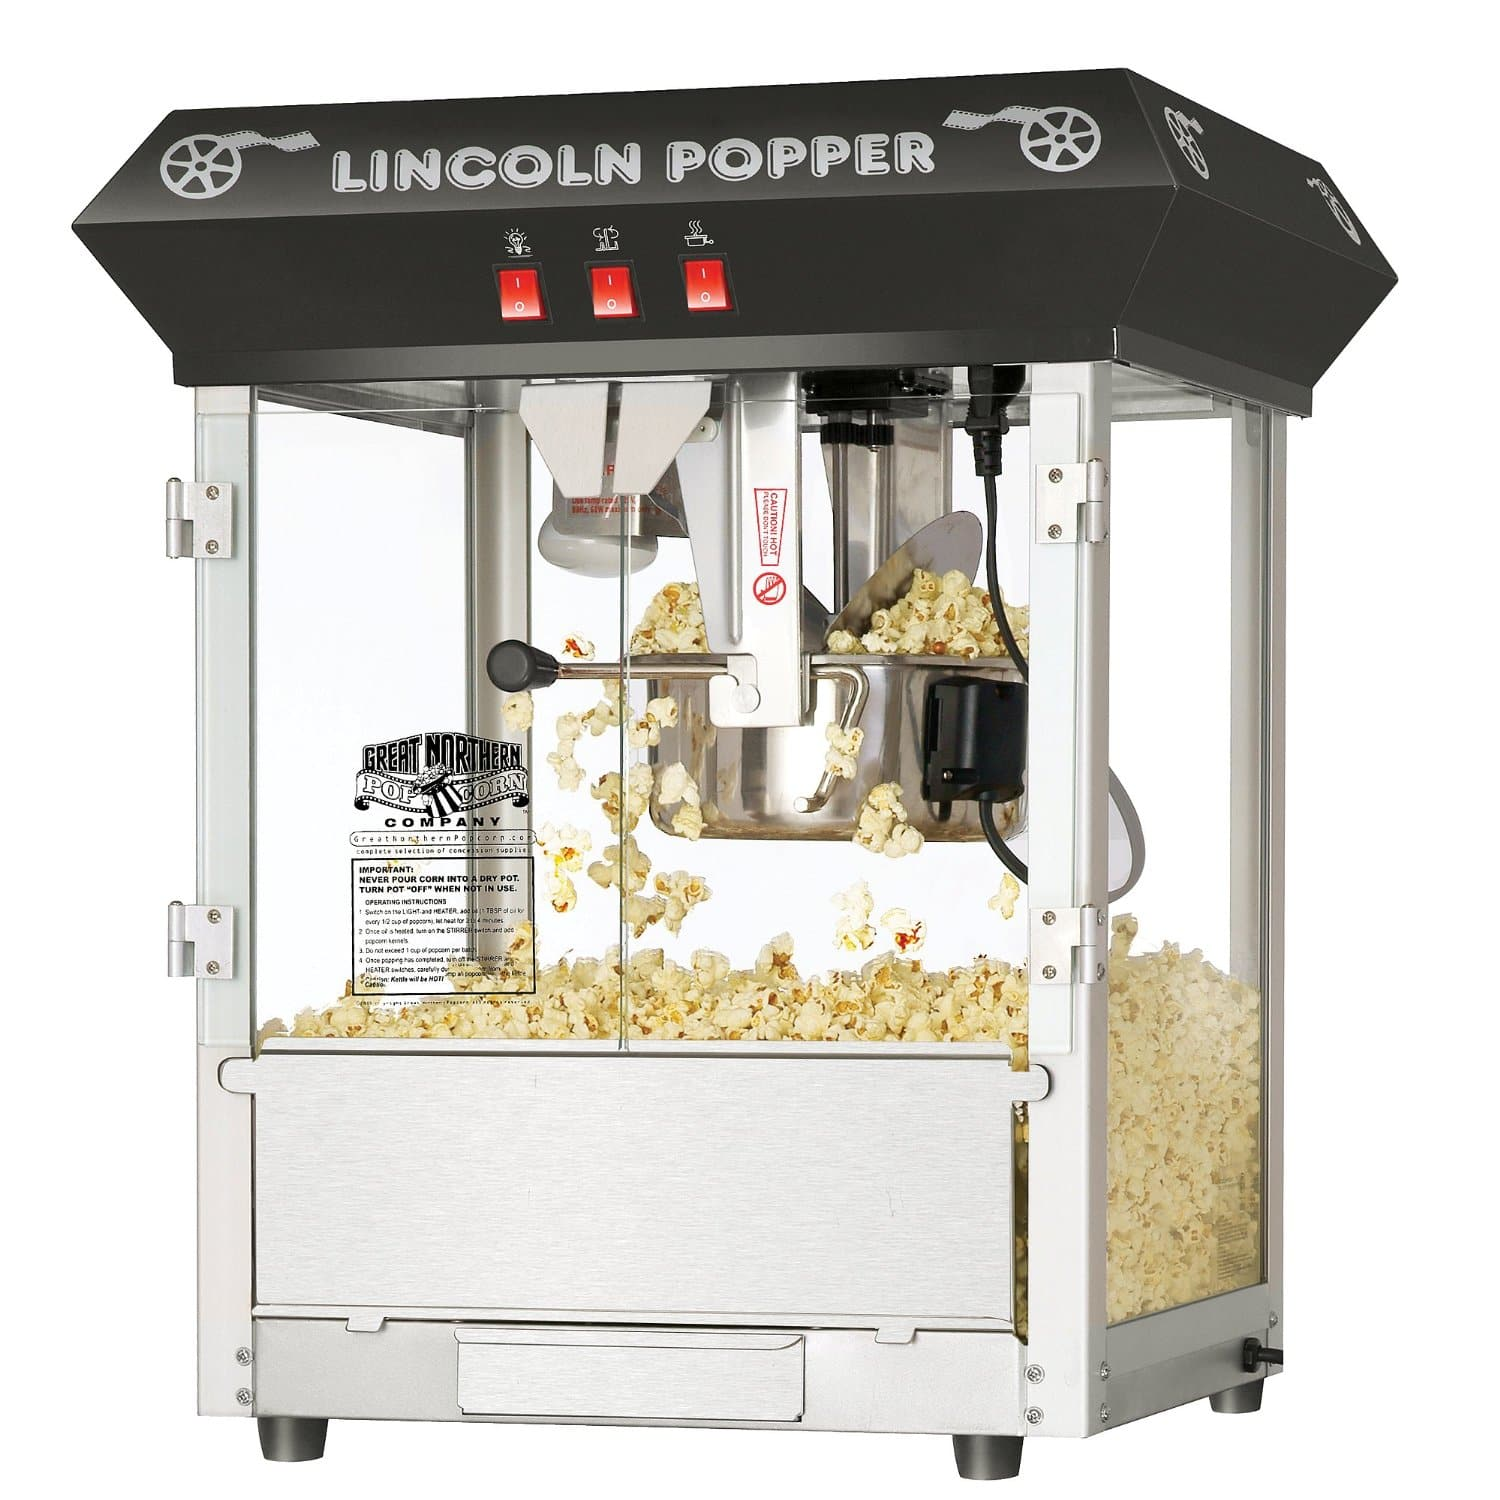 Great Northern Popcorn Black Bar Style Lincoln 8 Ounce Antique Popcorn Machine $119.99  Amazon - Lowest price ever